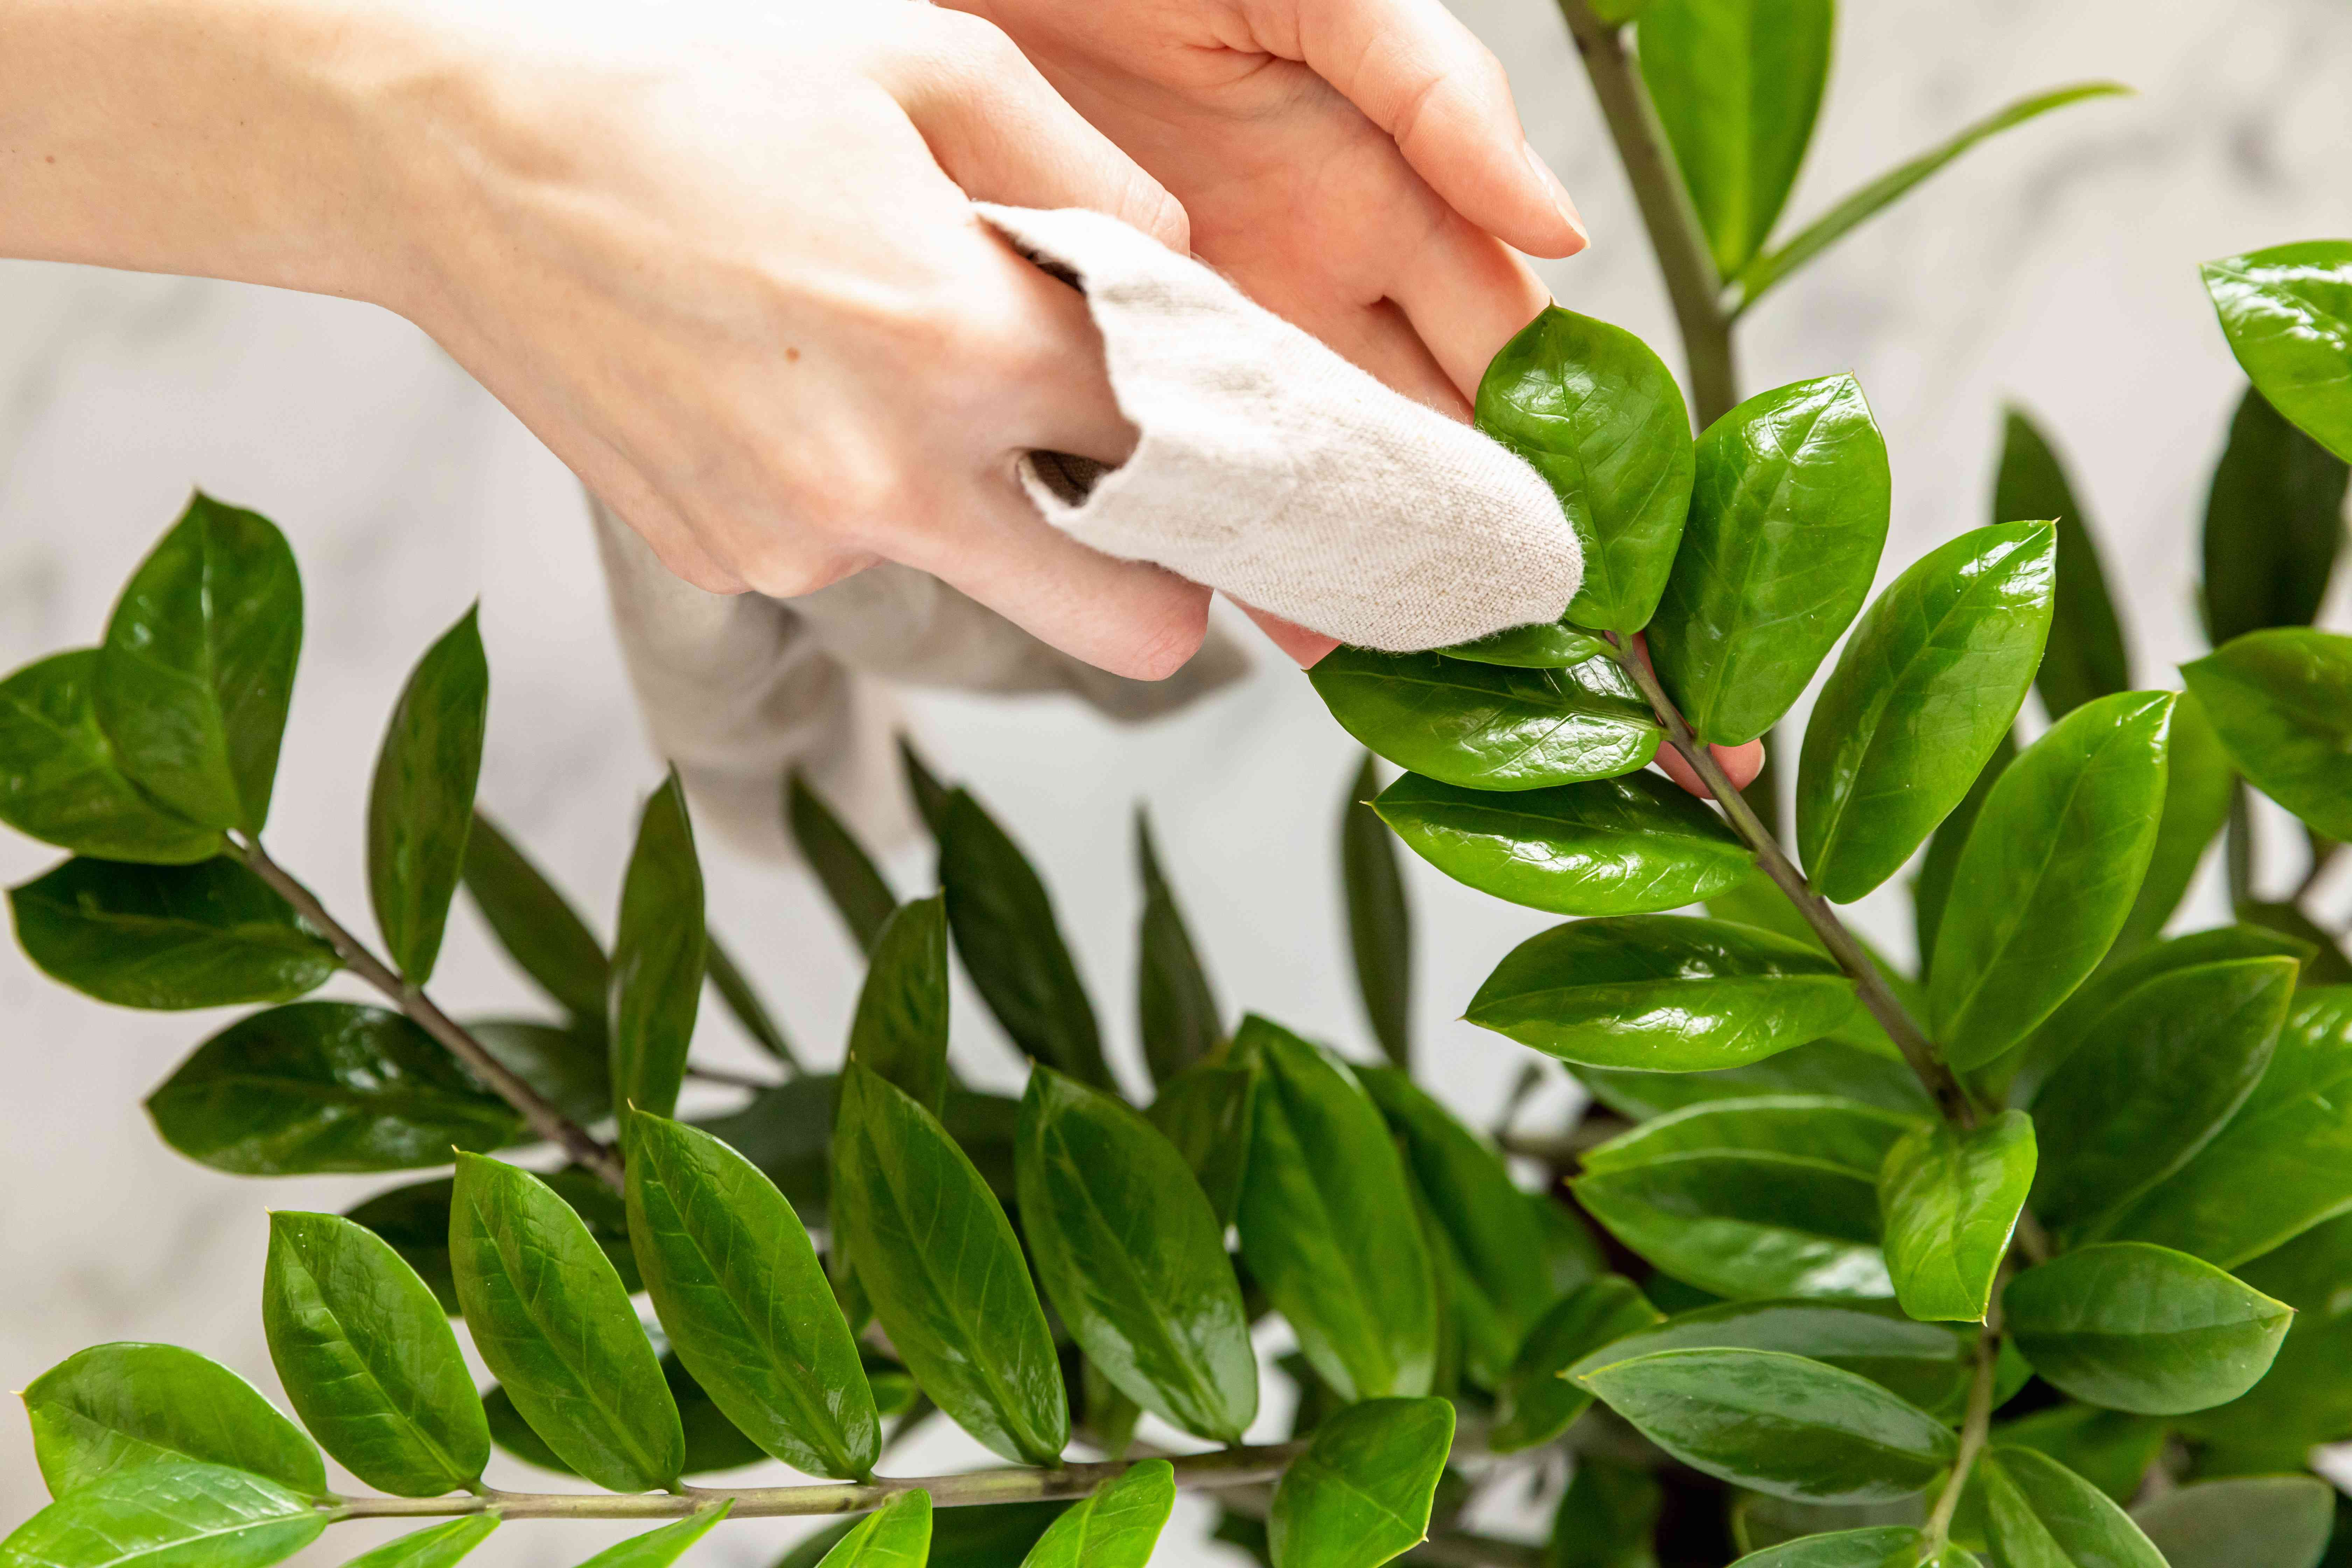 person wiping off plant leaves